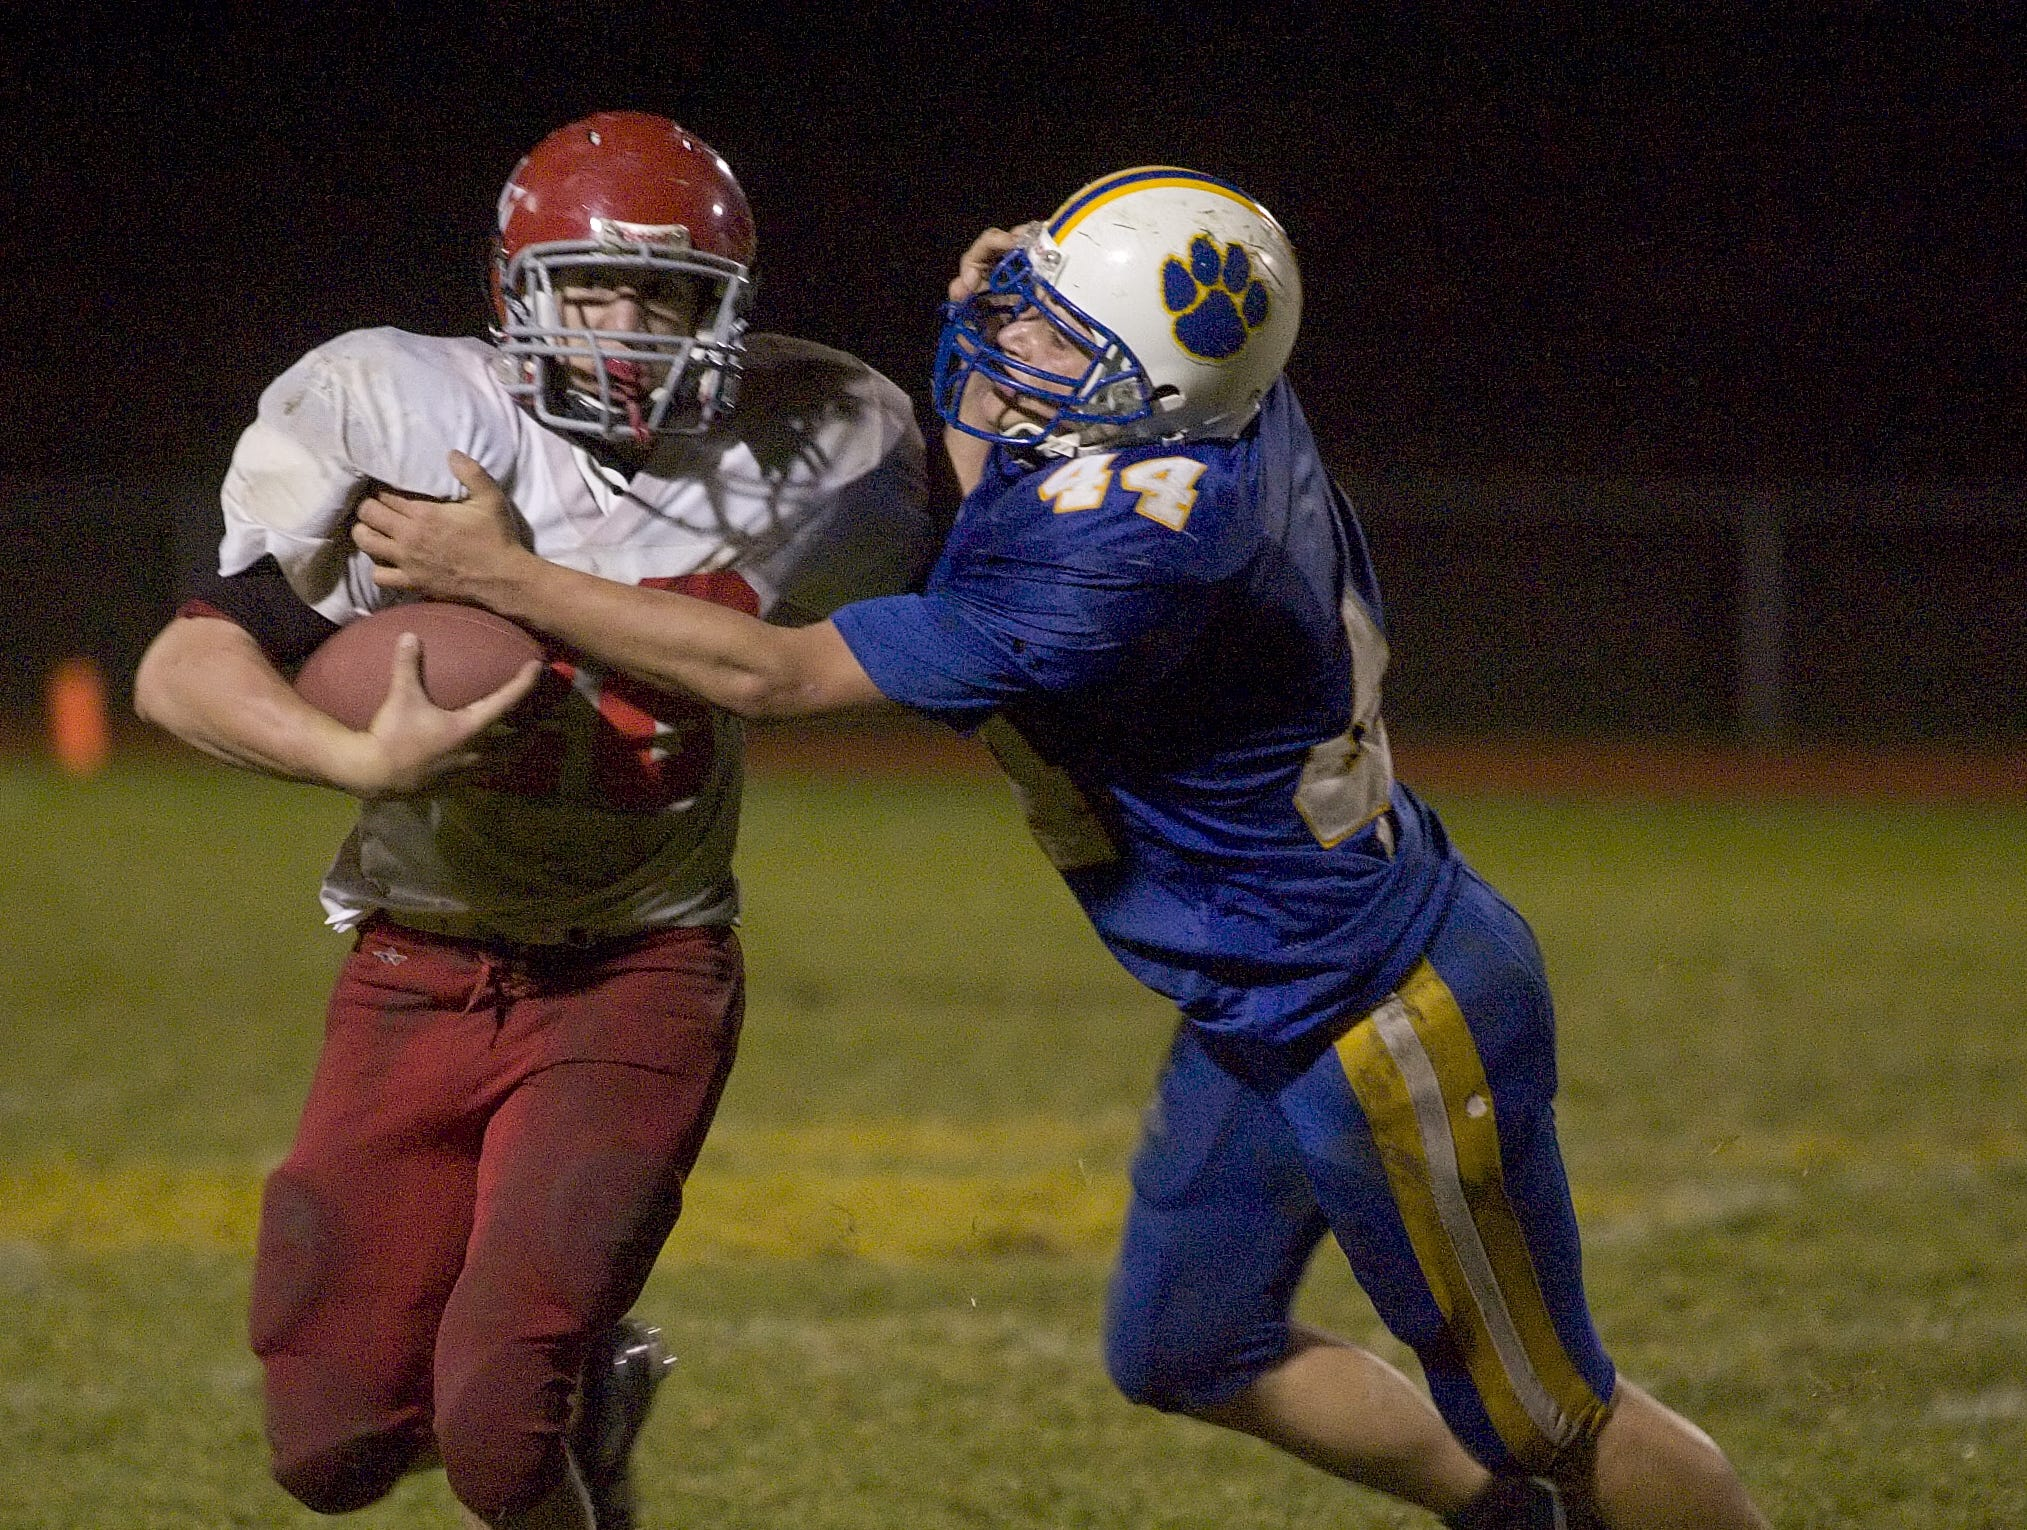 From 2009: Newark Valley's Travis French is pulled down by Lansing's Colden Knapp during the first quarter of the game on Friday at Lansing.